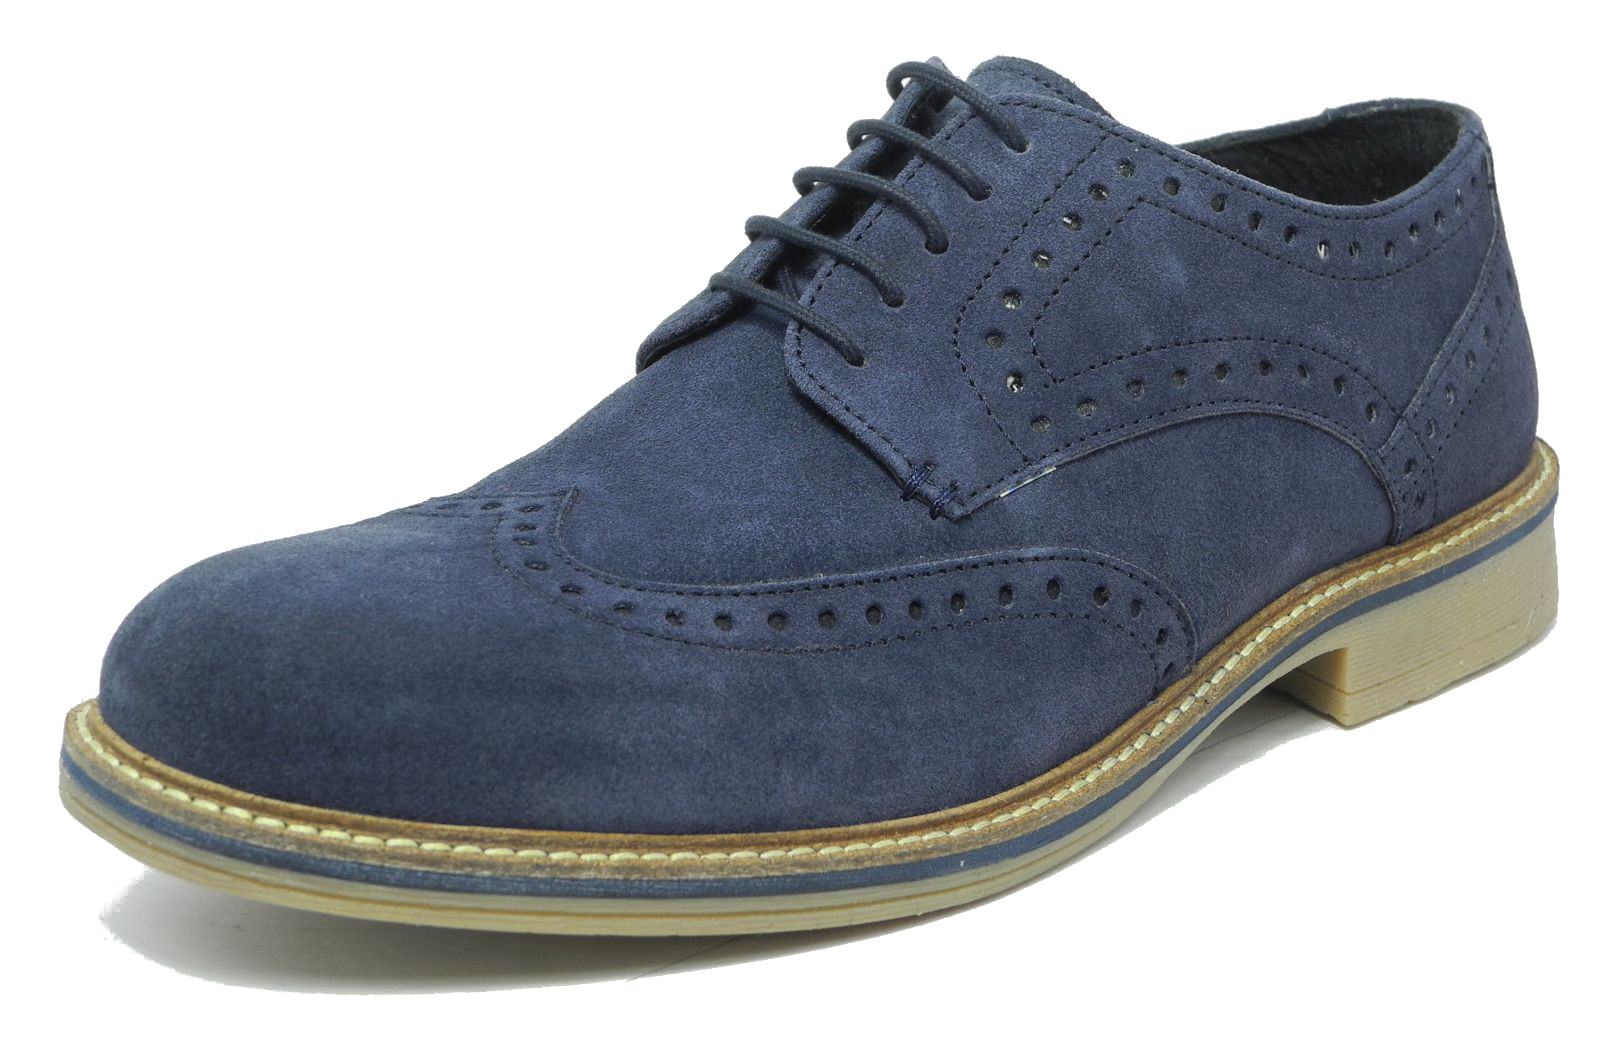 Mens Oxford Blue Suede Shoes